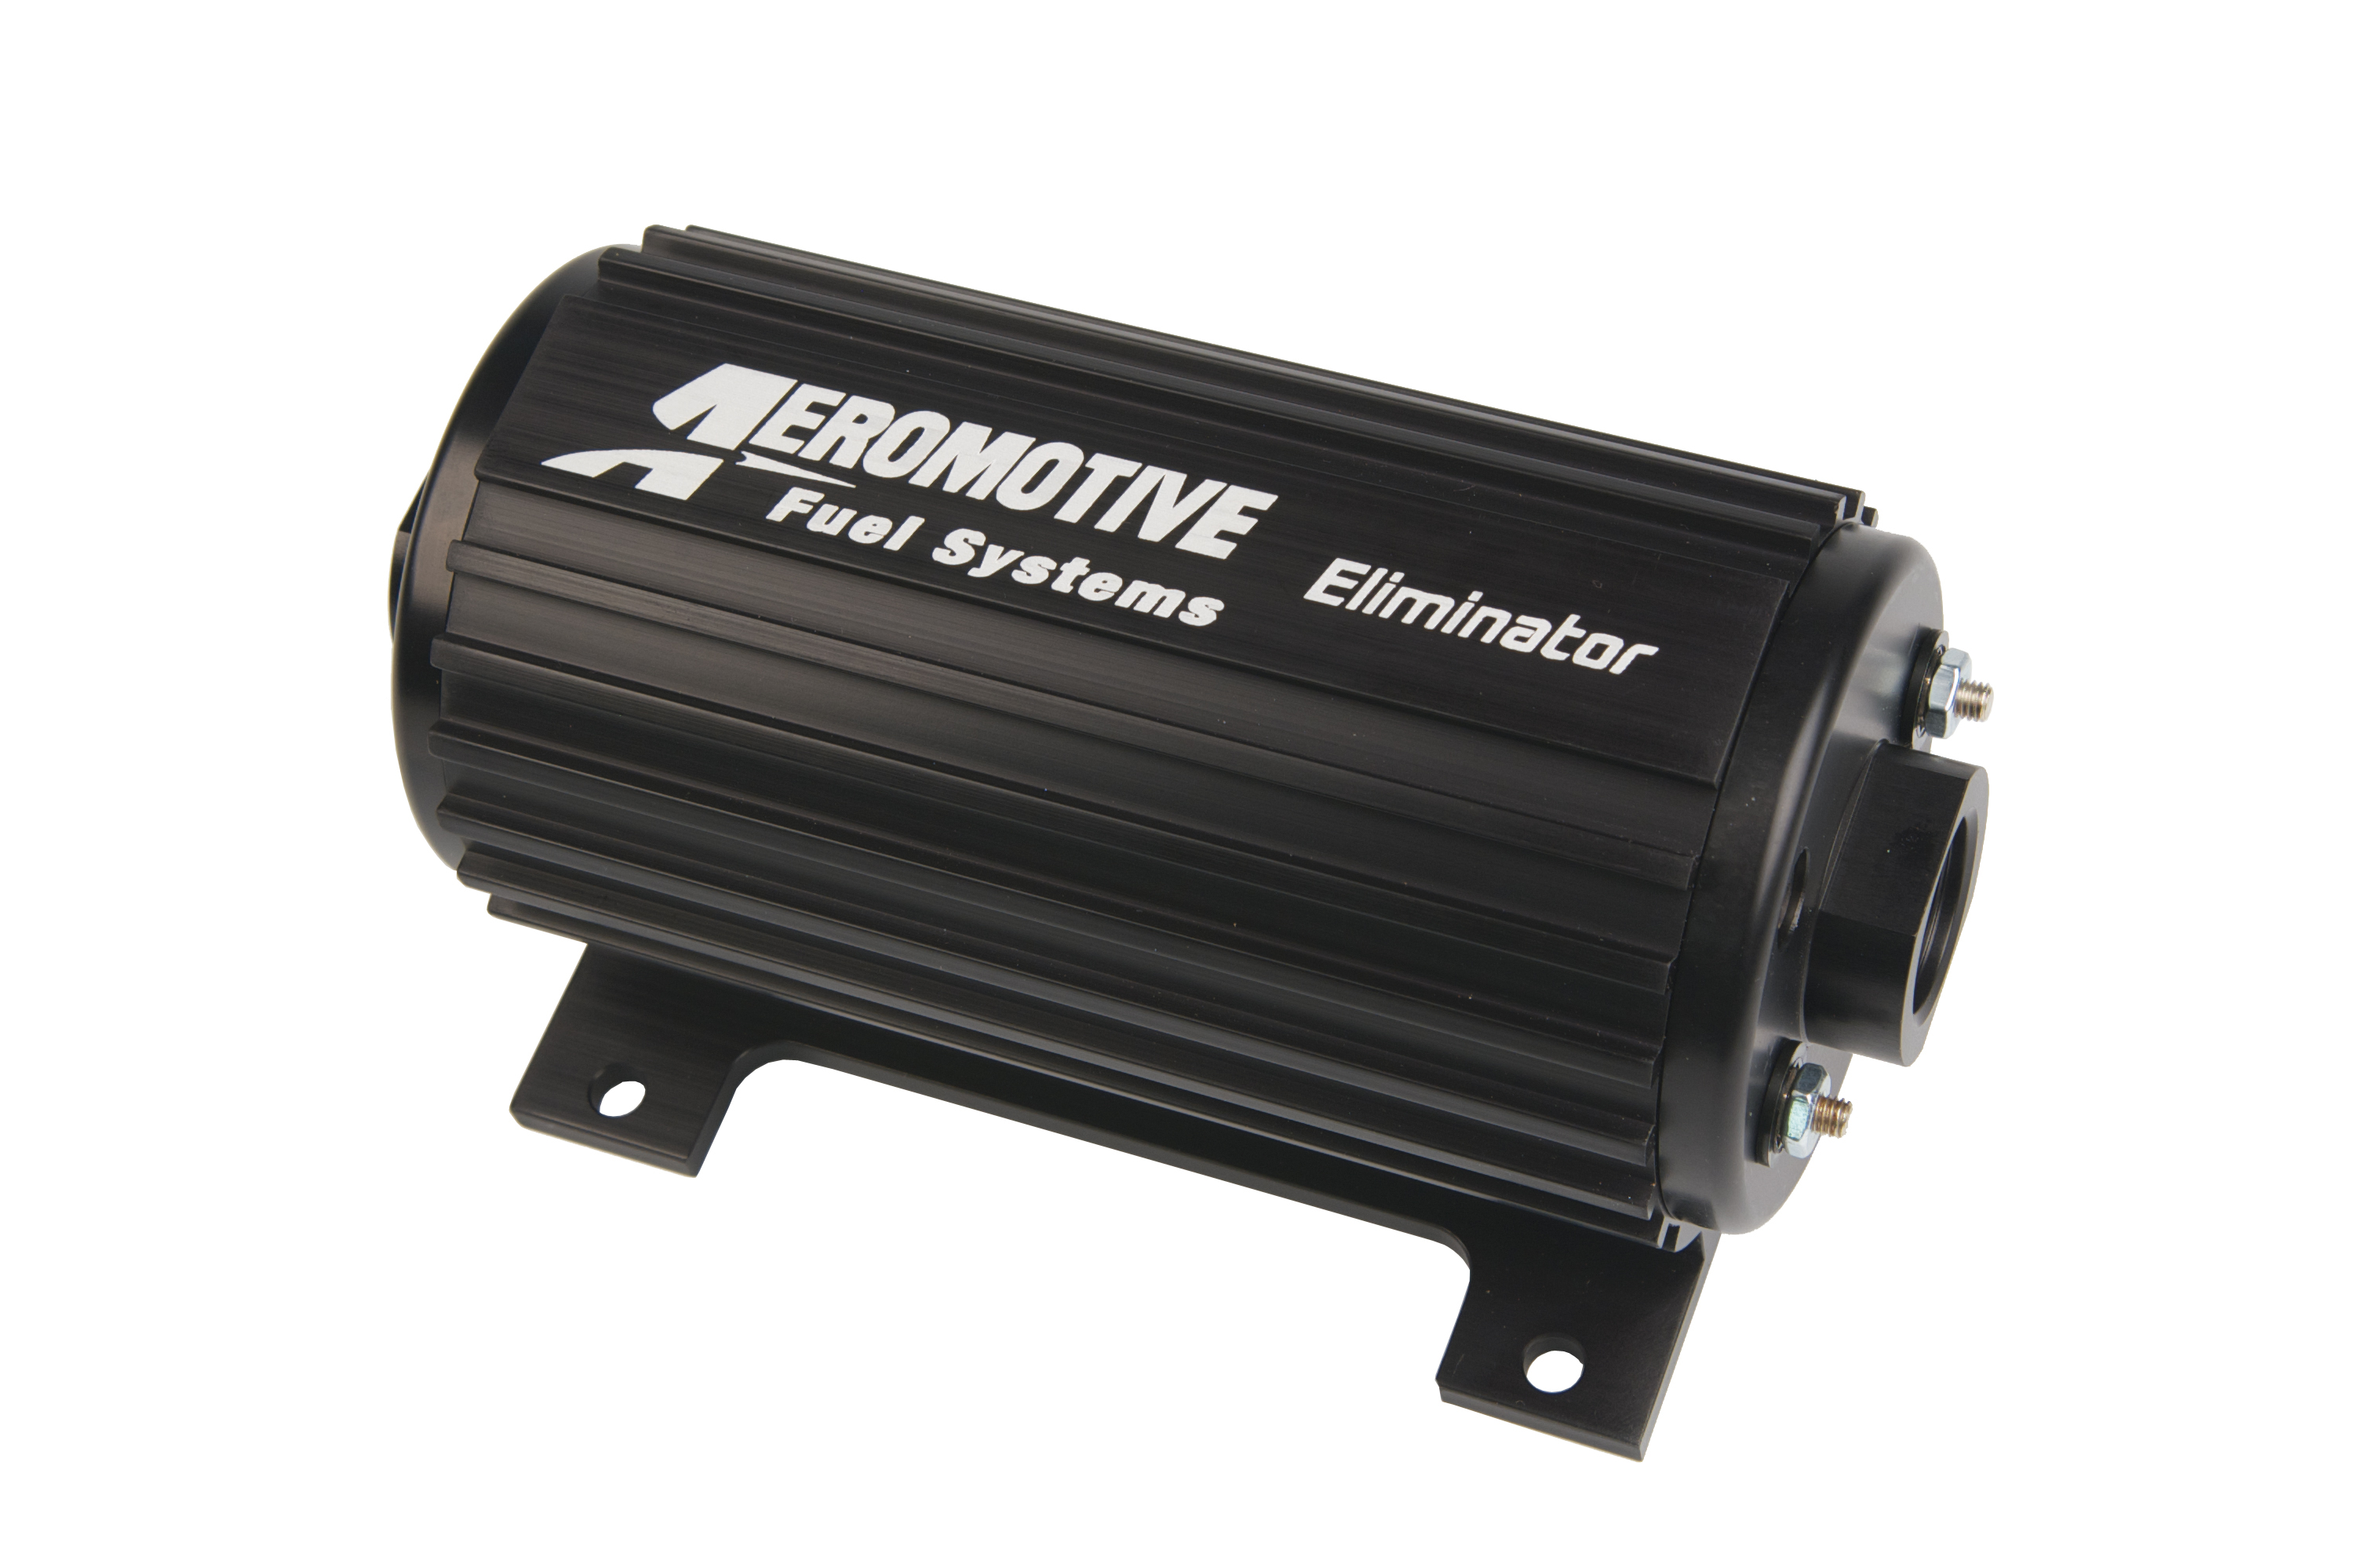 Aeromotive 11104 Fuel Pump, Eliminator, Electric, In-Line / In-Tank, 166 gph at 45 psi, 12 AN Inlet, 10 AN Outlet, Black, E85 / Gas, Each